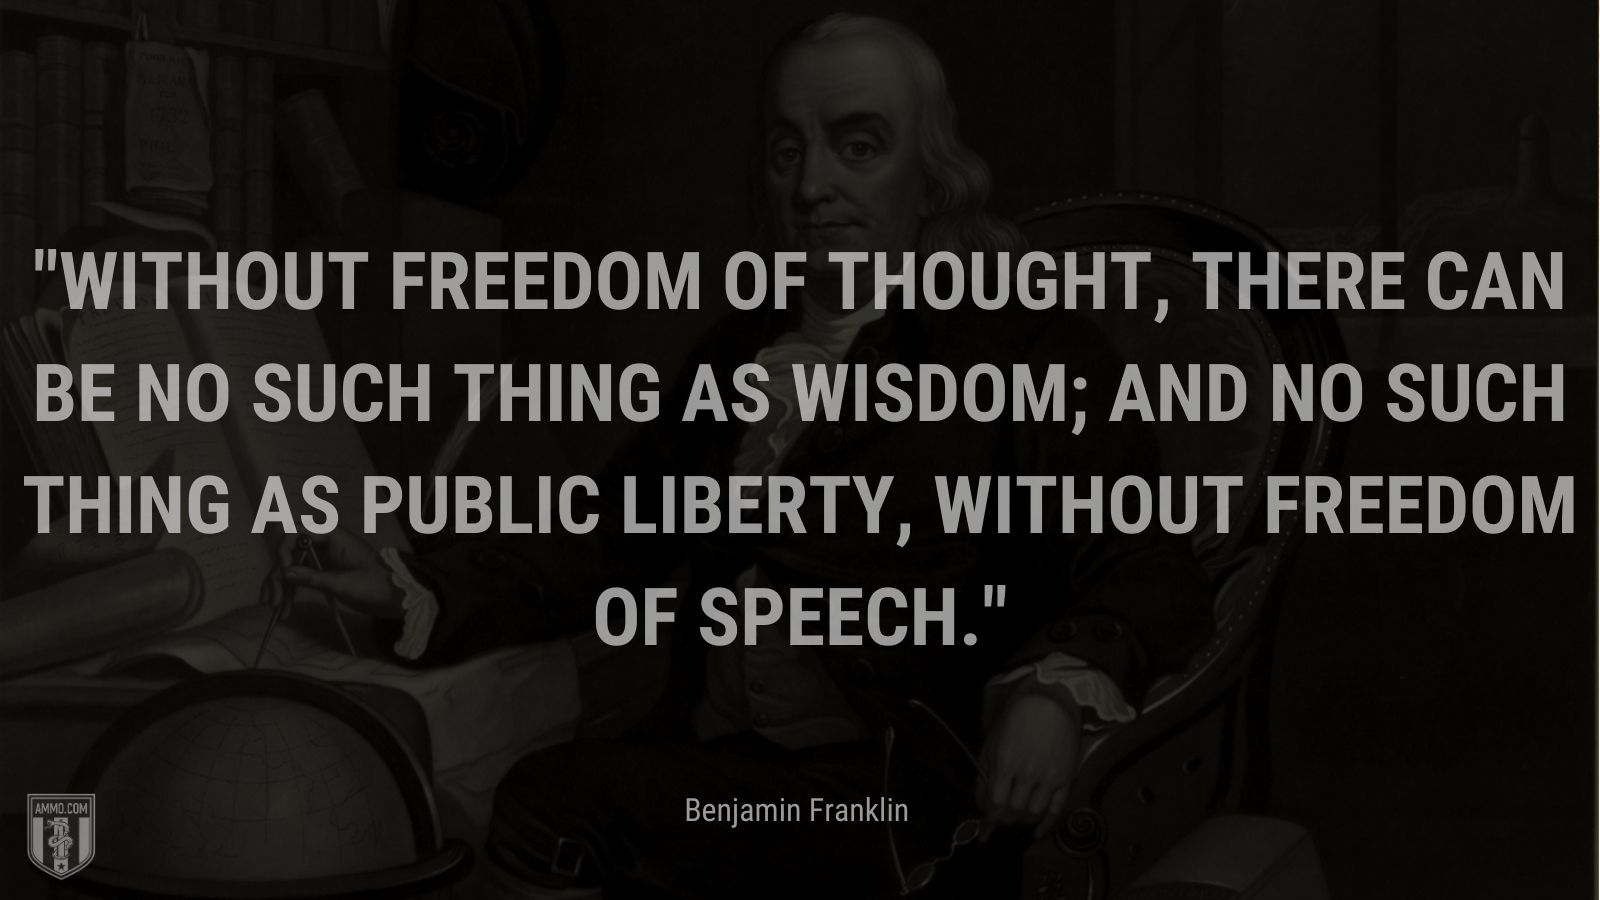 """""""Without Freedom of Thought, there can be no such thing as Wisdom; and no such thing as public liberty, without Freedom of Speech."""" - Benjamin Franklin"""